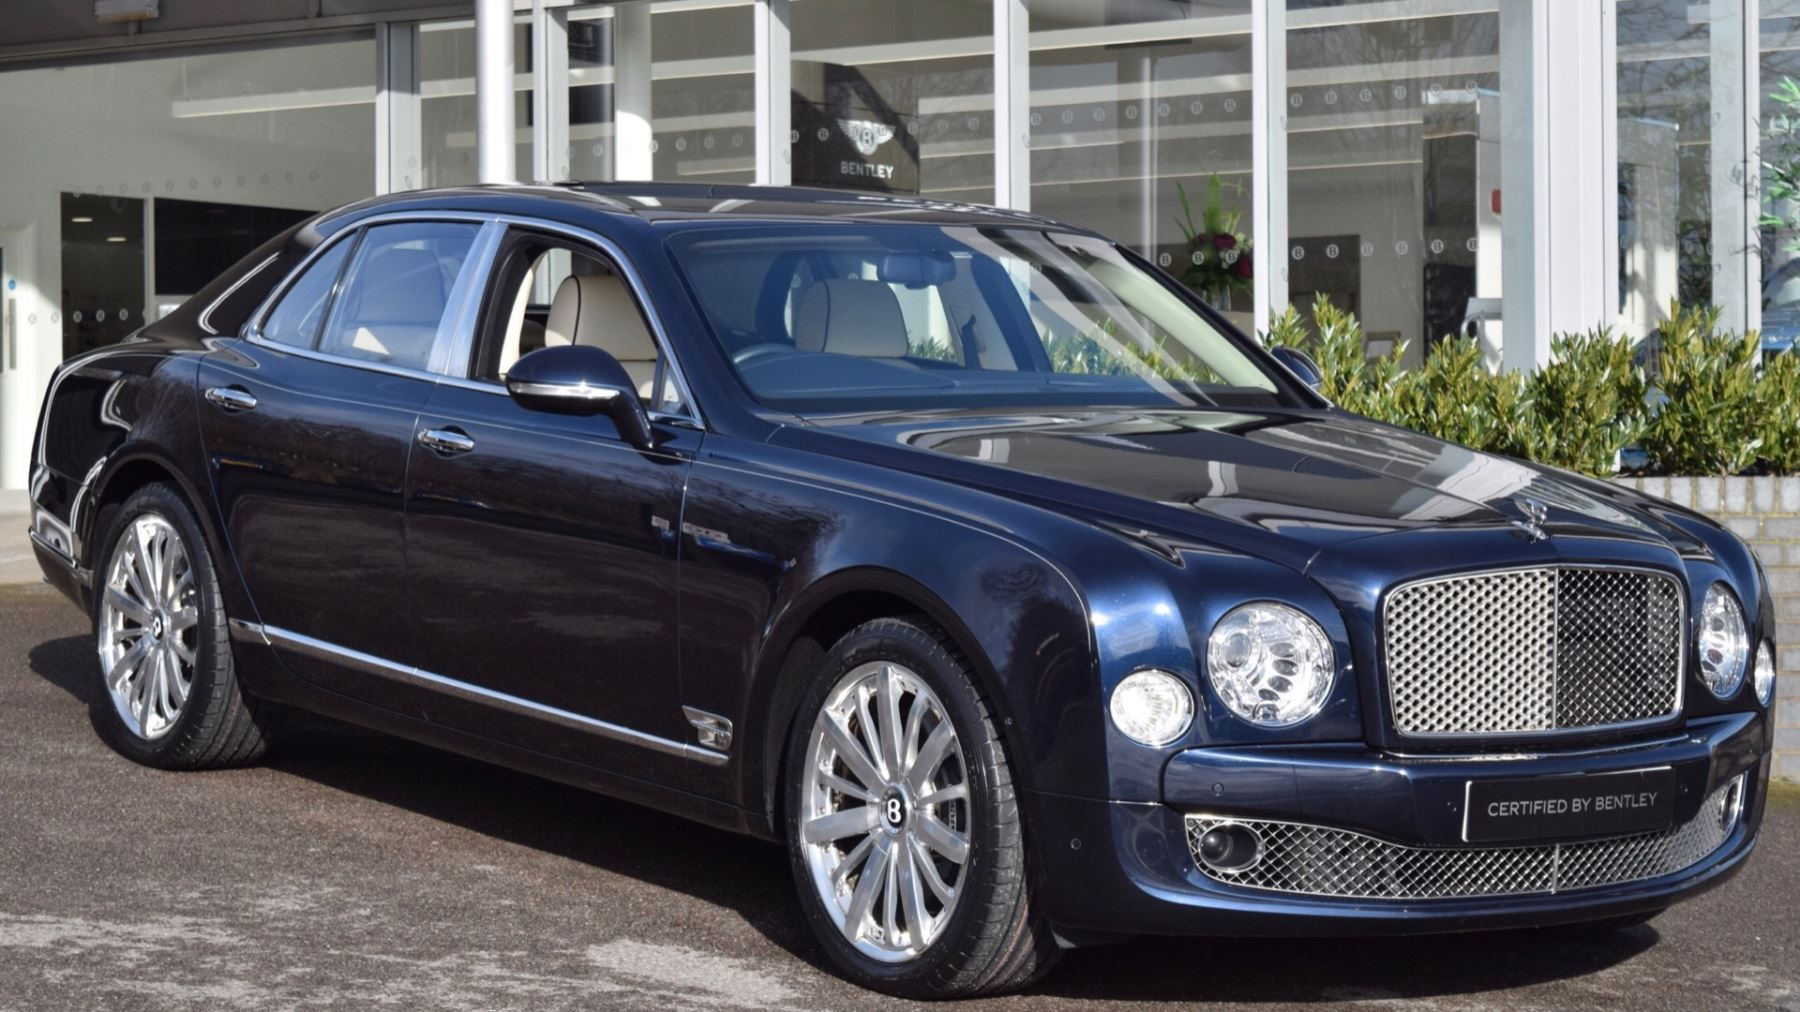 Bentley Mulsanne 6.8 V8 Mulliner Driving Spec Automatic 4 door Saloon (2014)